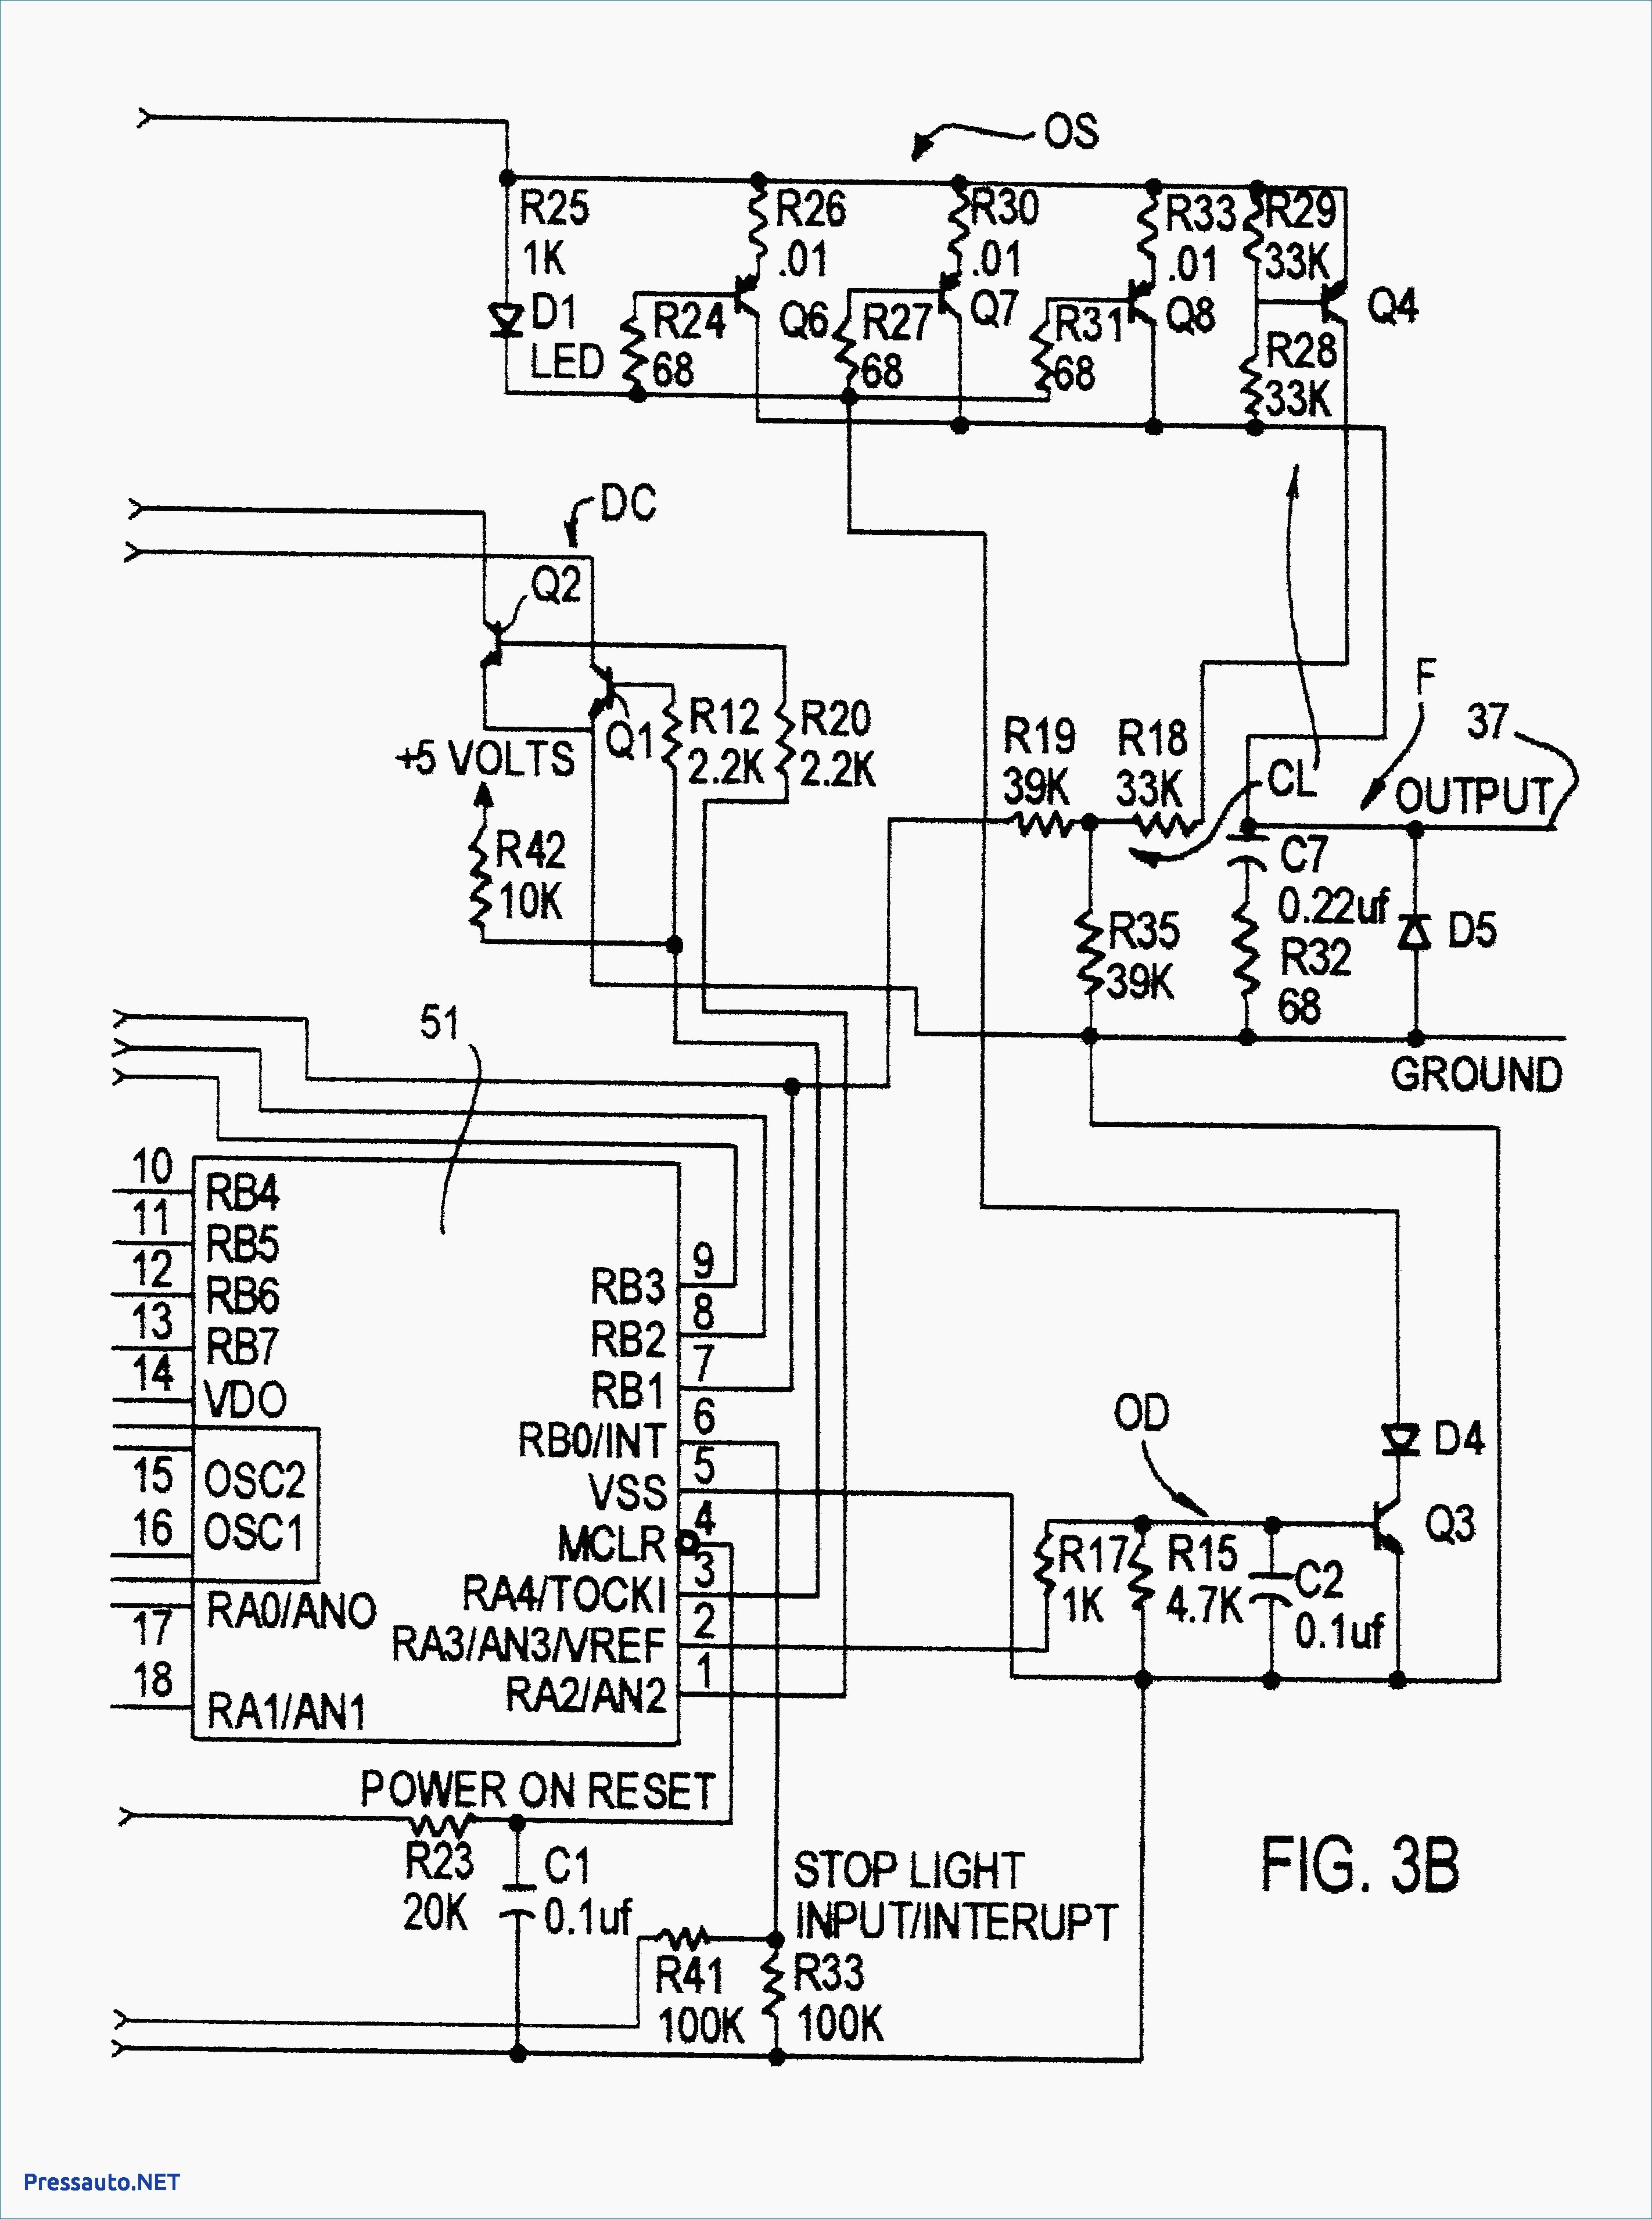 tow wiring diagram fast xfi vehicle best of image